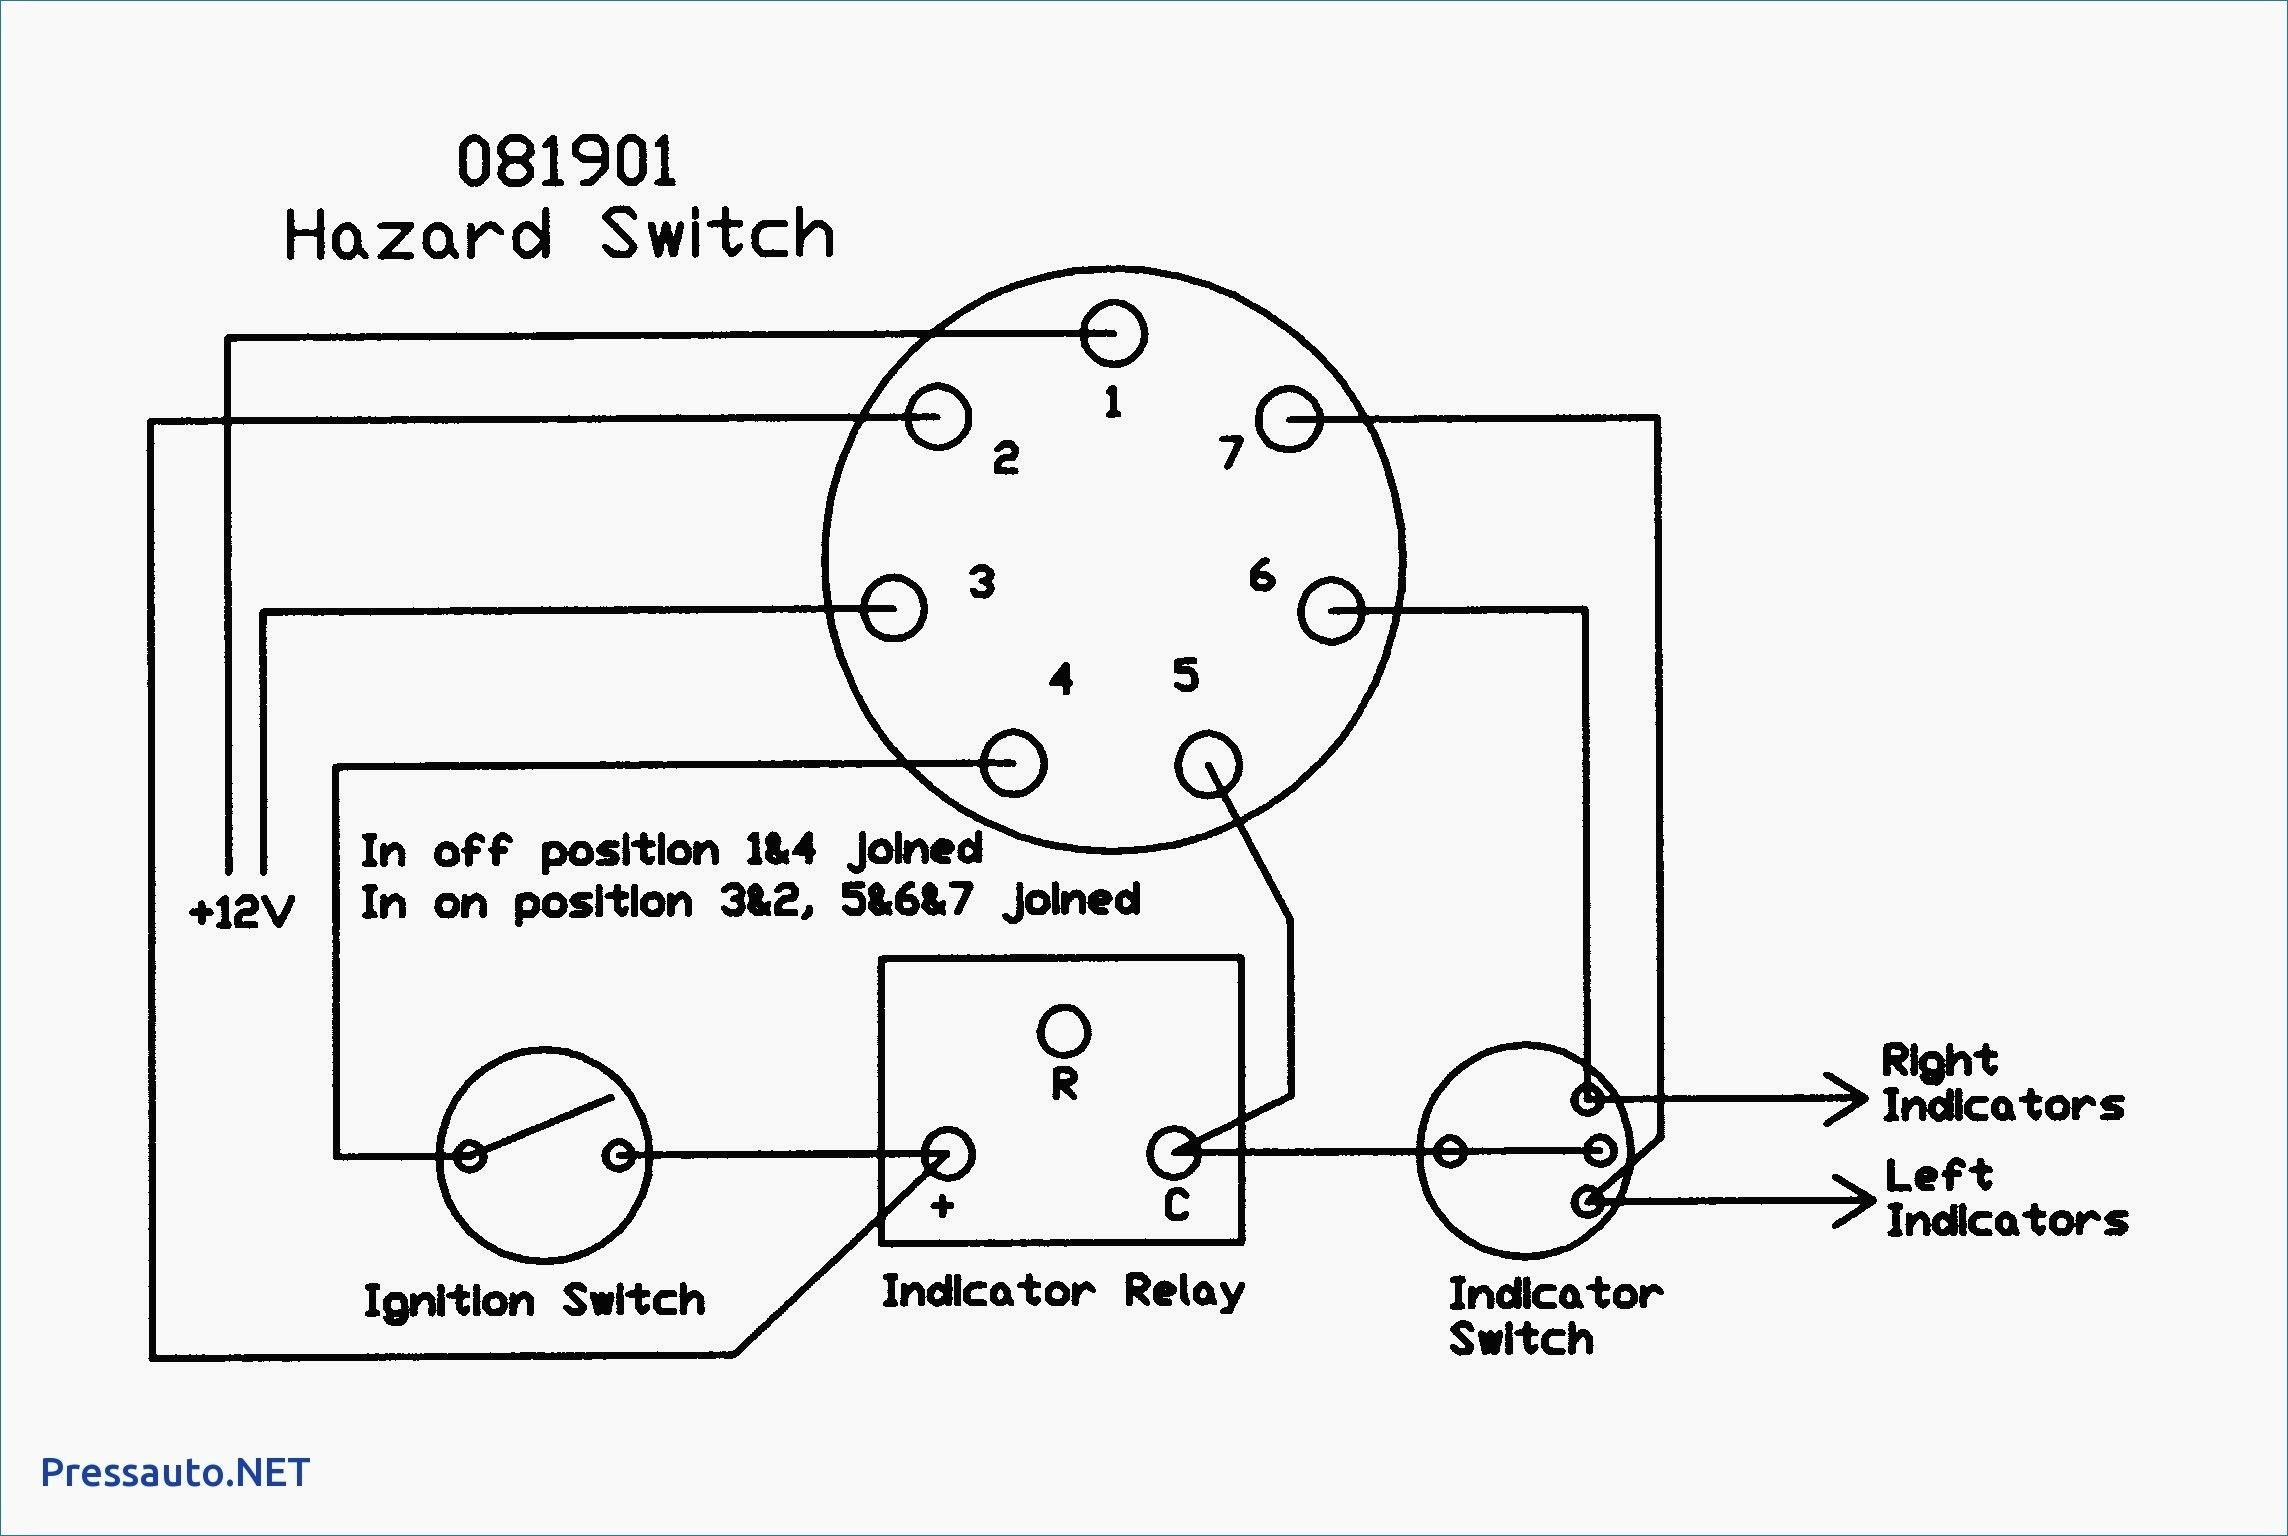 Unique Simple Switch Wiring Diagram Wiringdiagram Diagramming Diagramm Visuals Visualisation Graph Light Switch Wiring Generator Transfer Switch Diagram